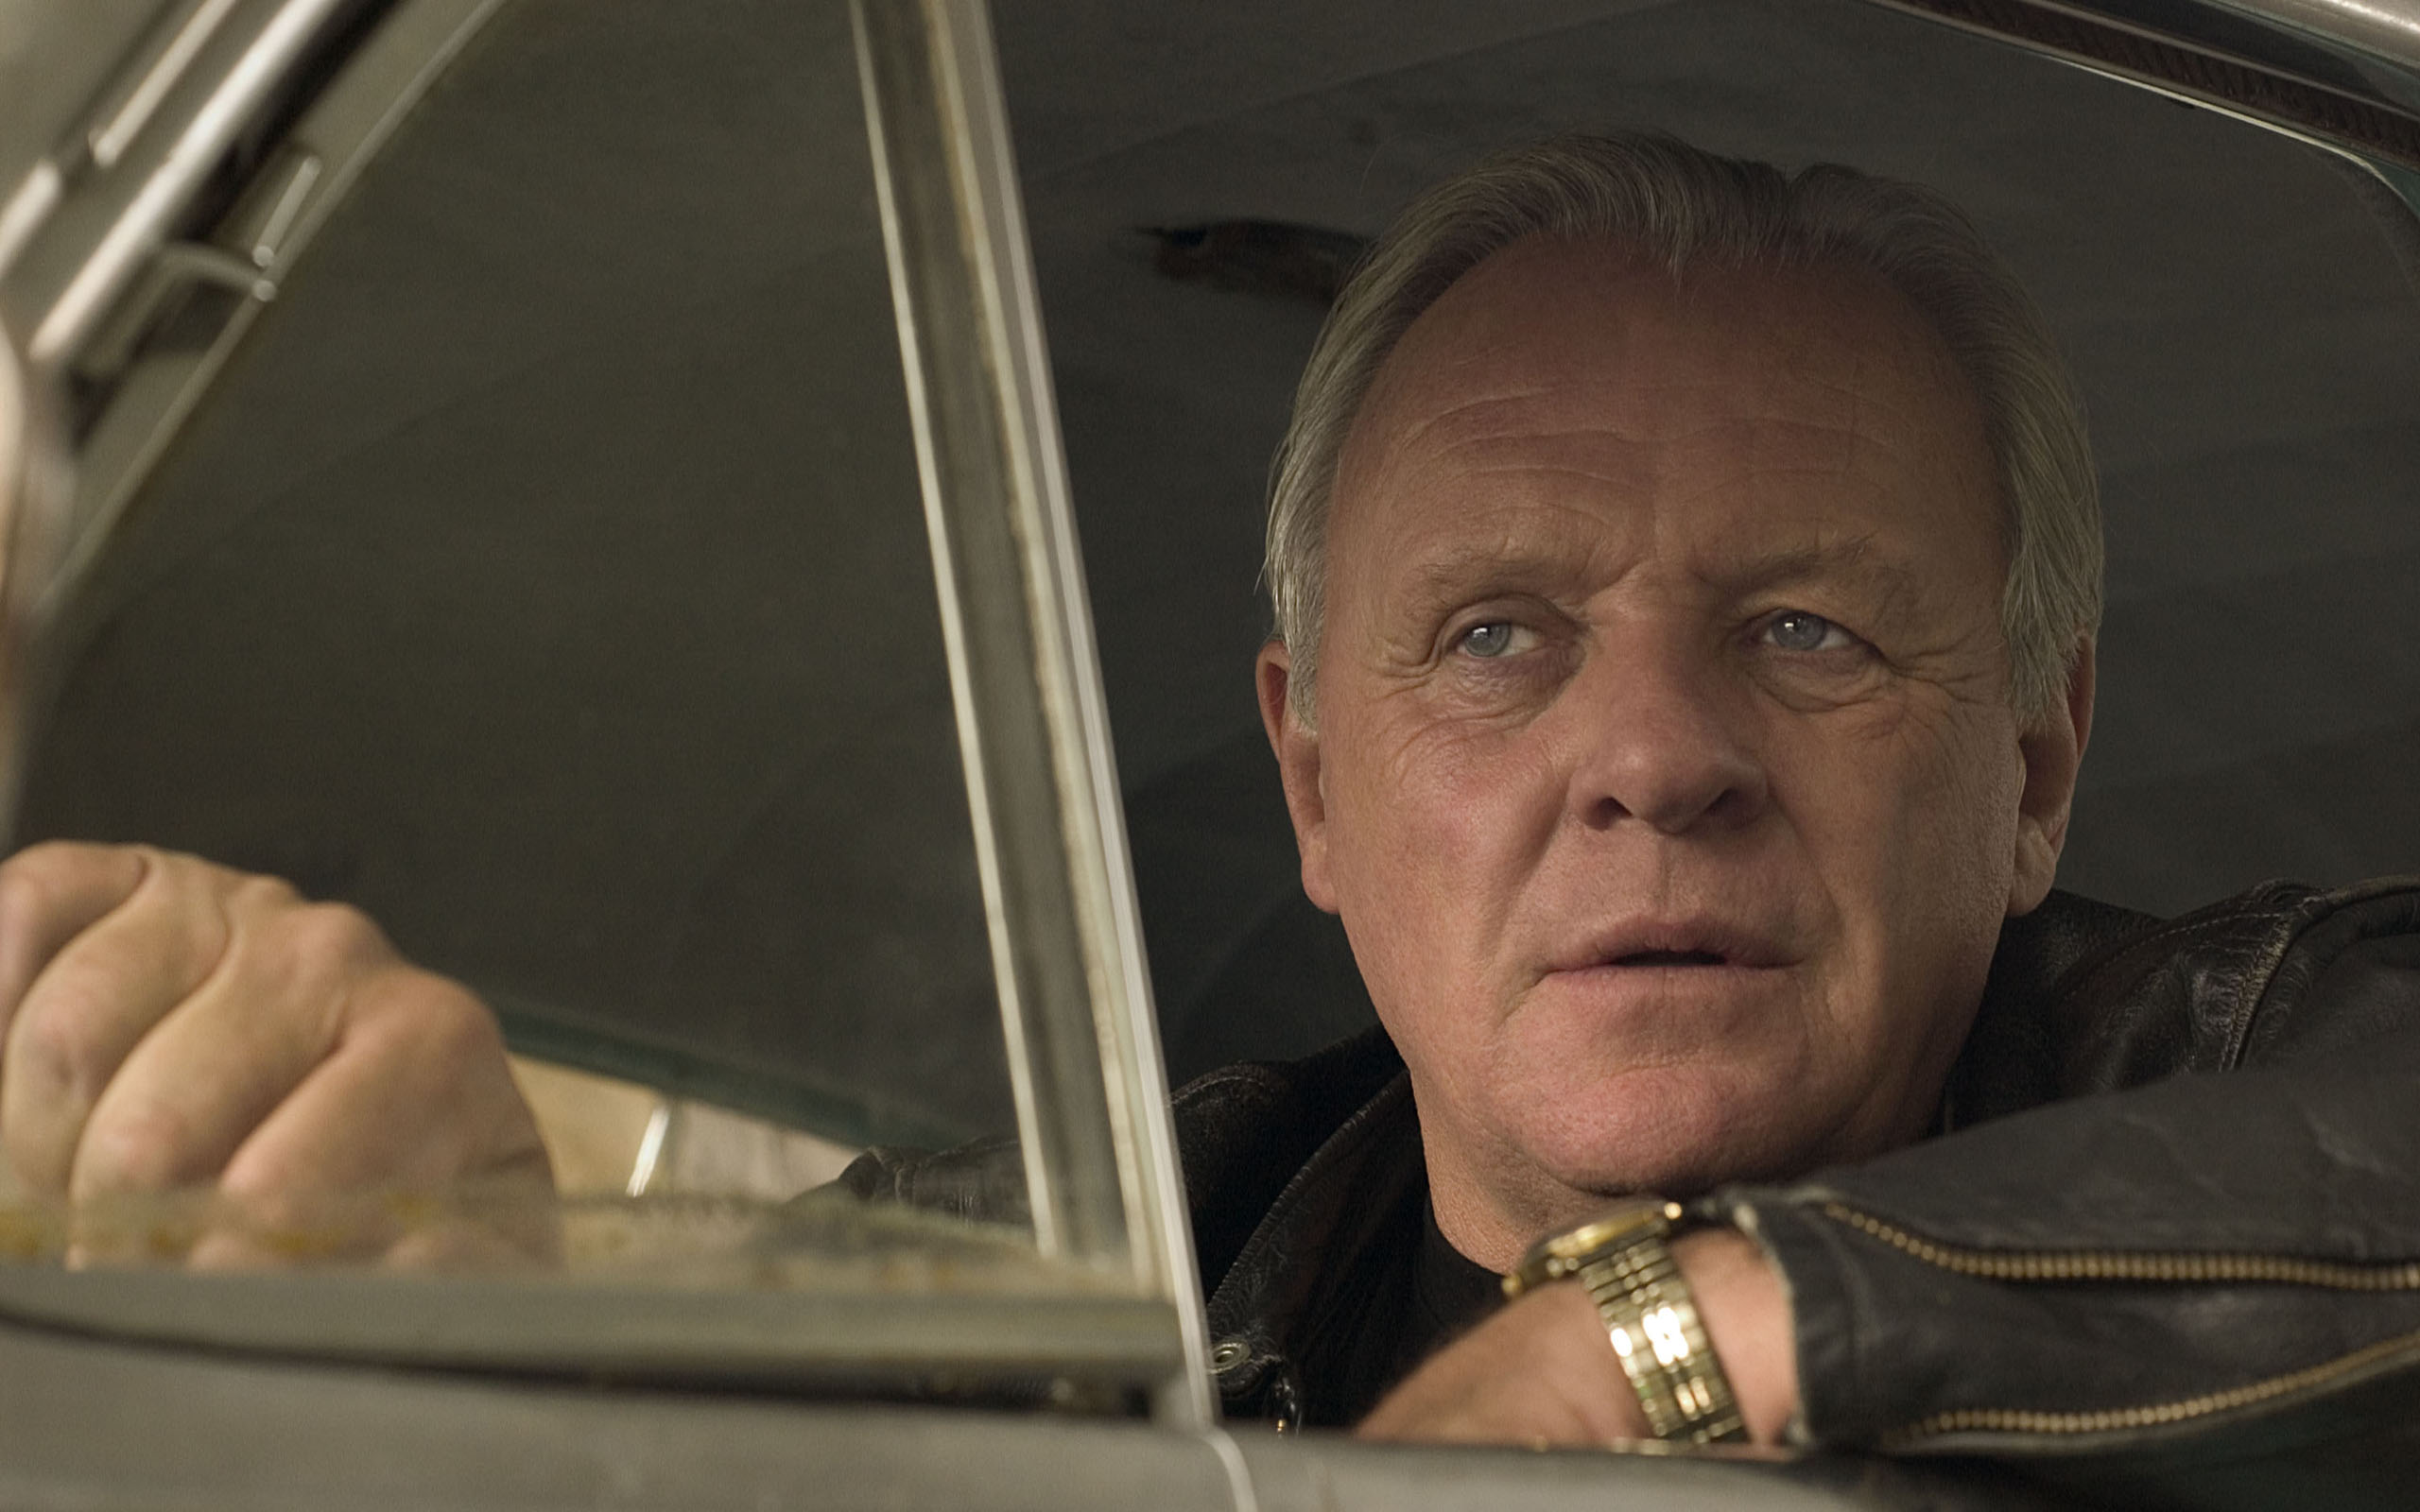 Superhero Wallpaper Hd Download Anthony Hopkins And Judi Dench Slipping On Italian Shoes